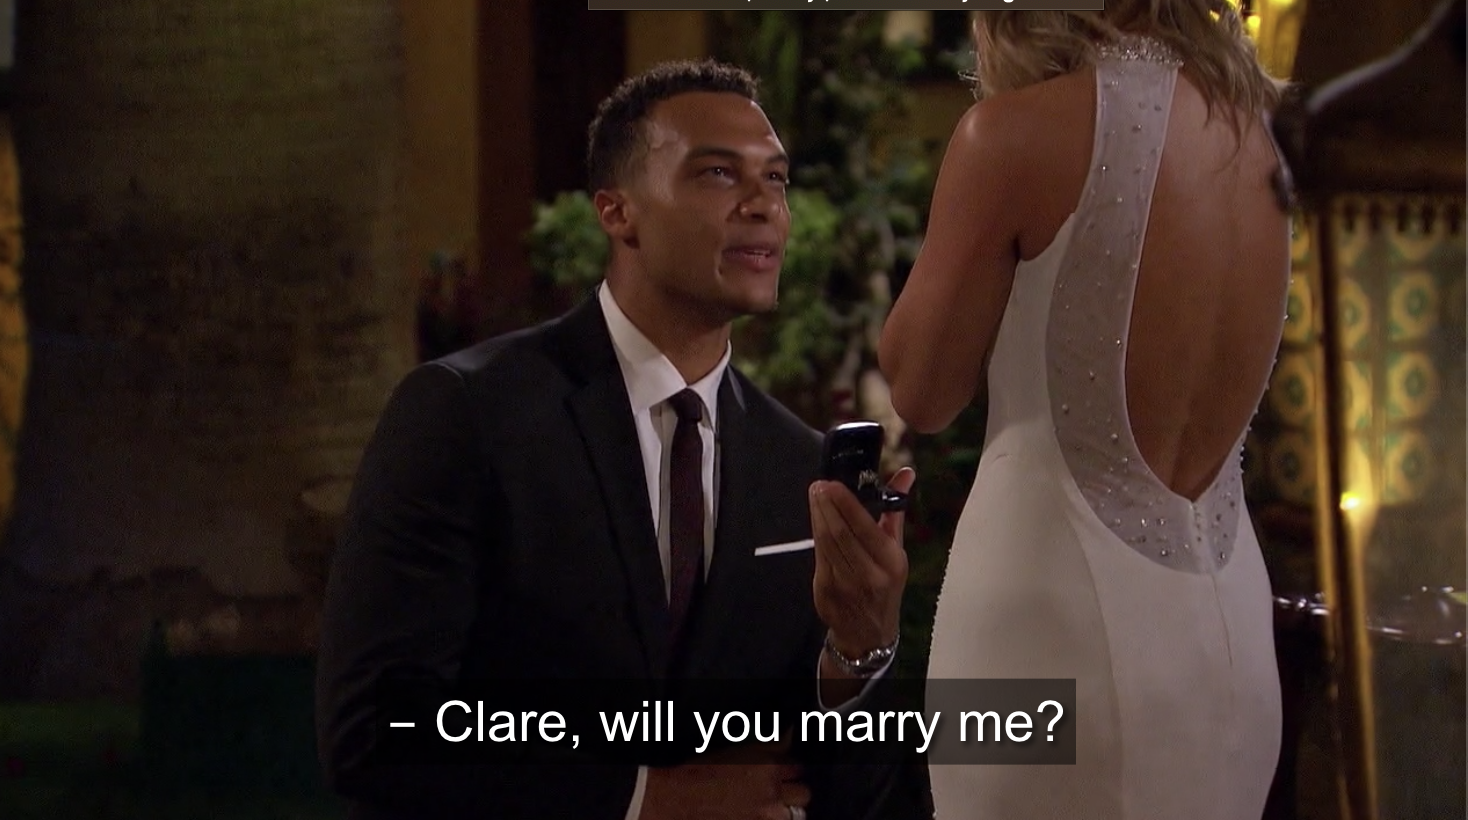 Dale asking Clare for her hand in marriage